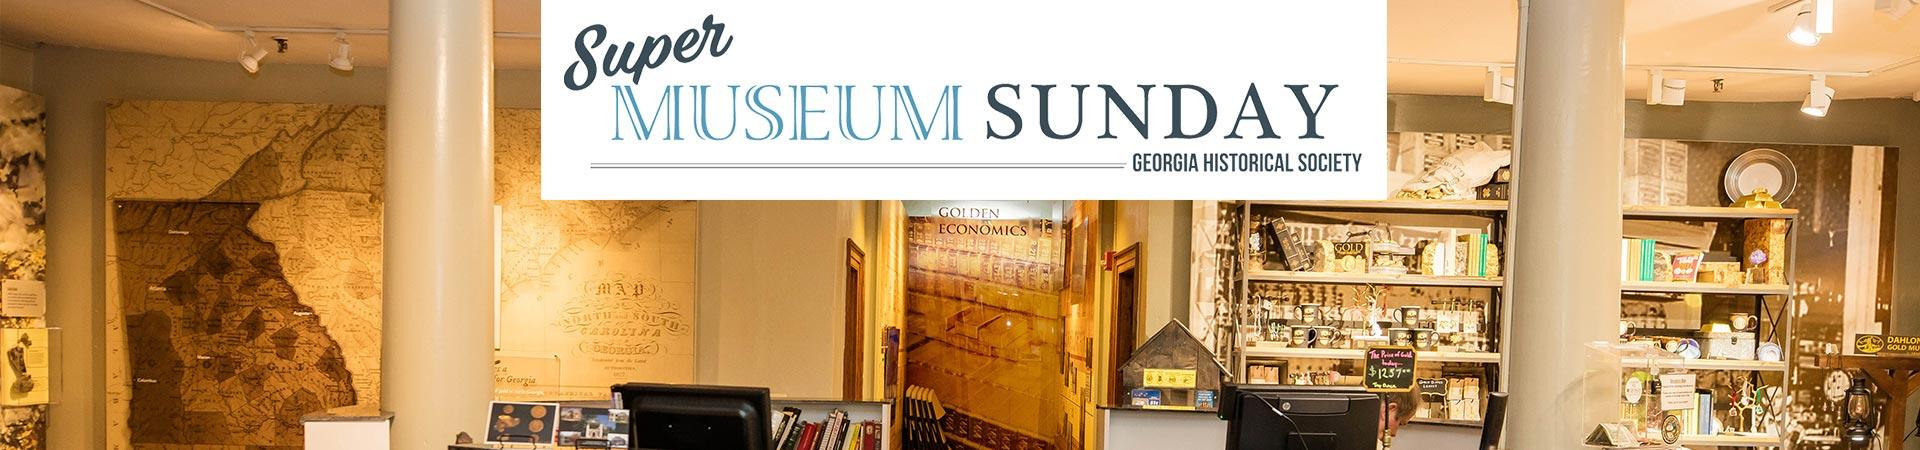 Super Museum Sunday Events